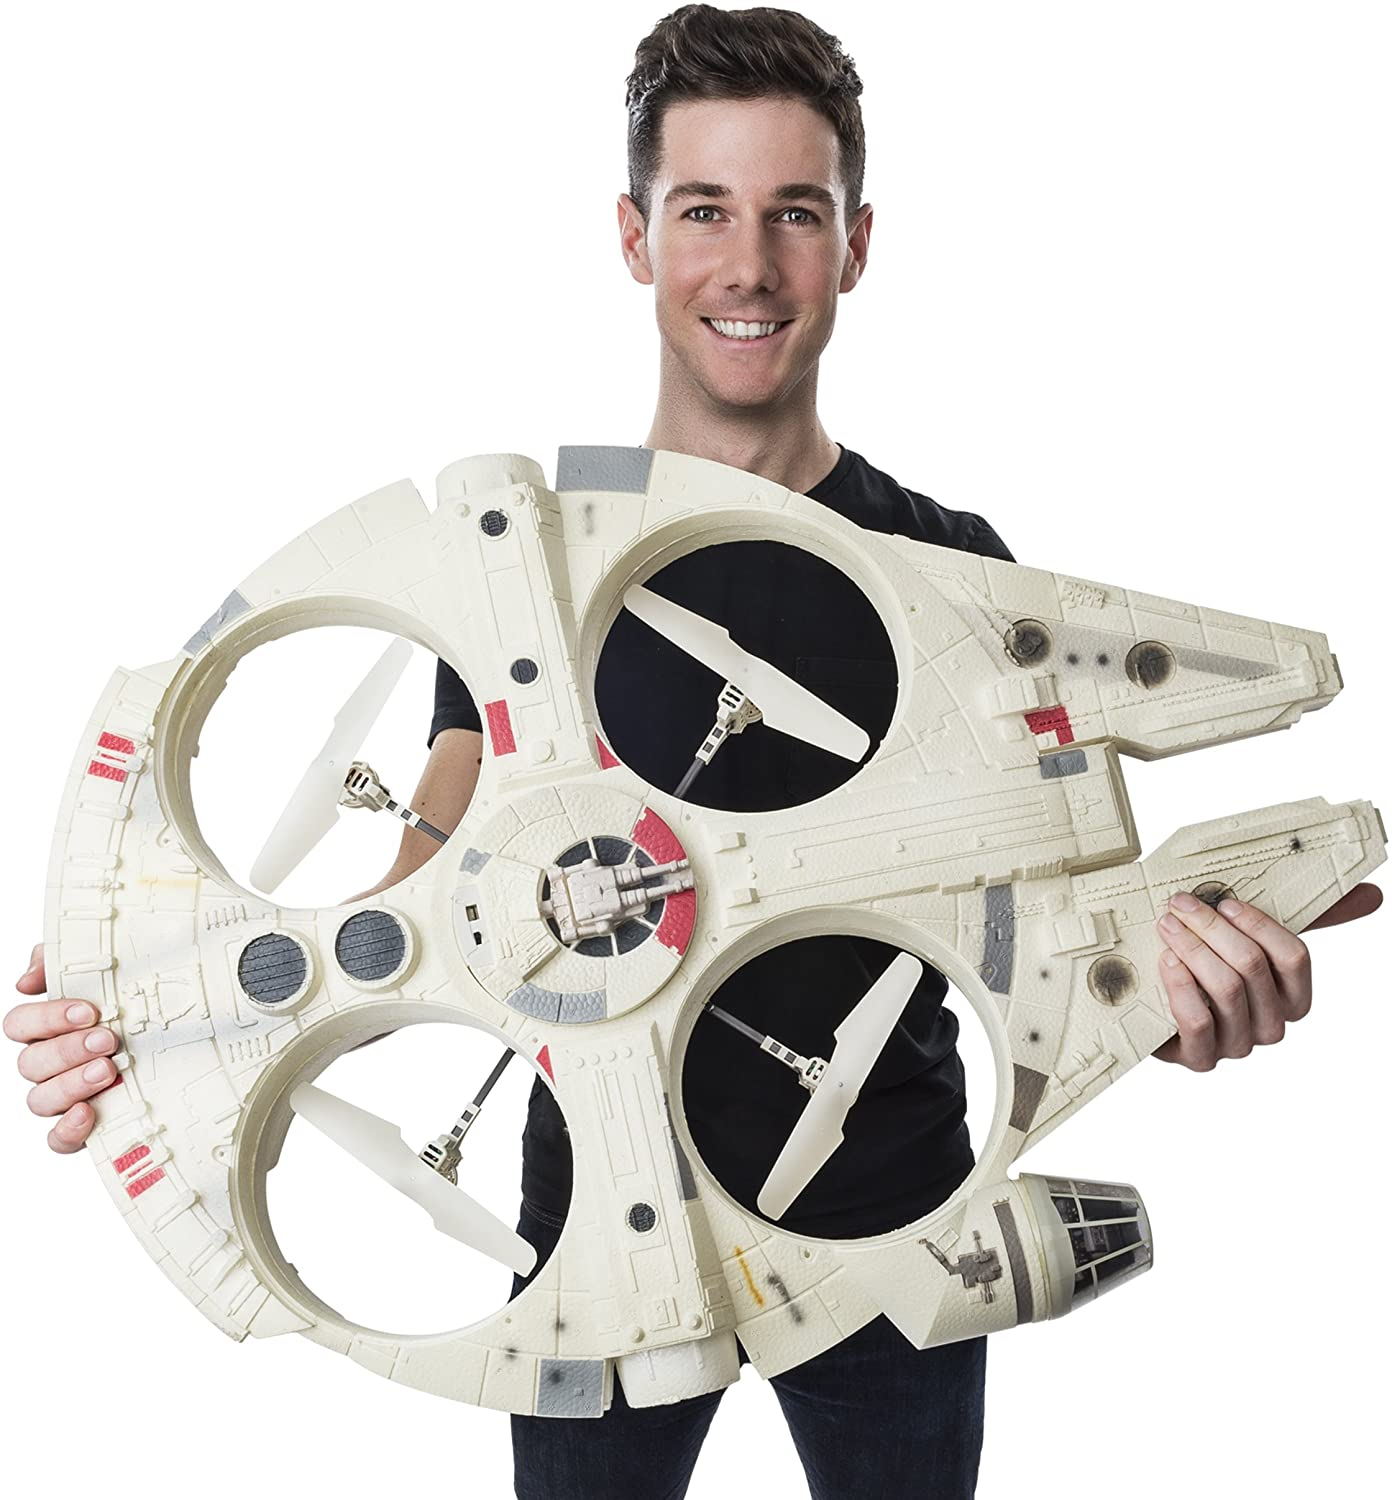 Star Wars Remote Control Drone